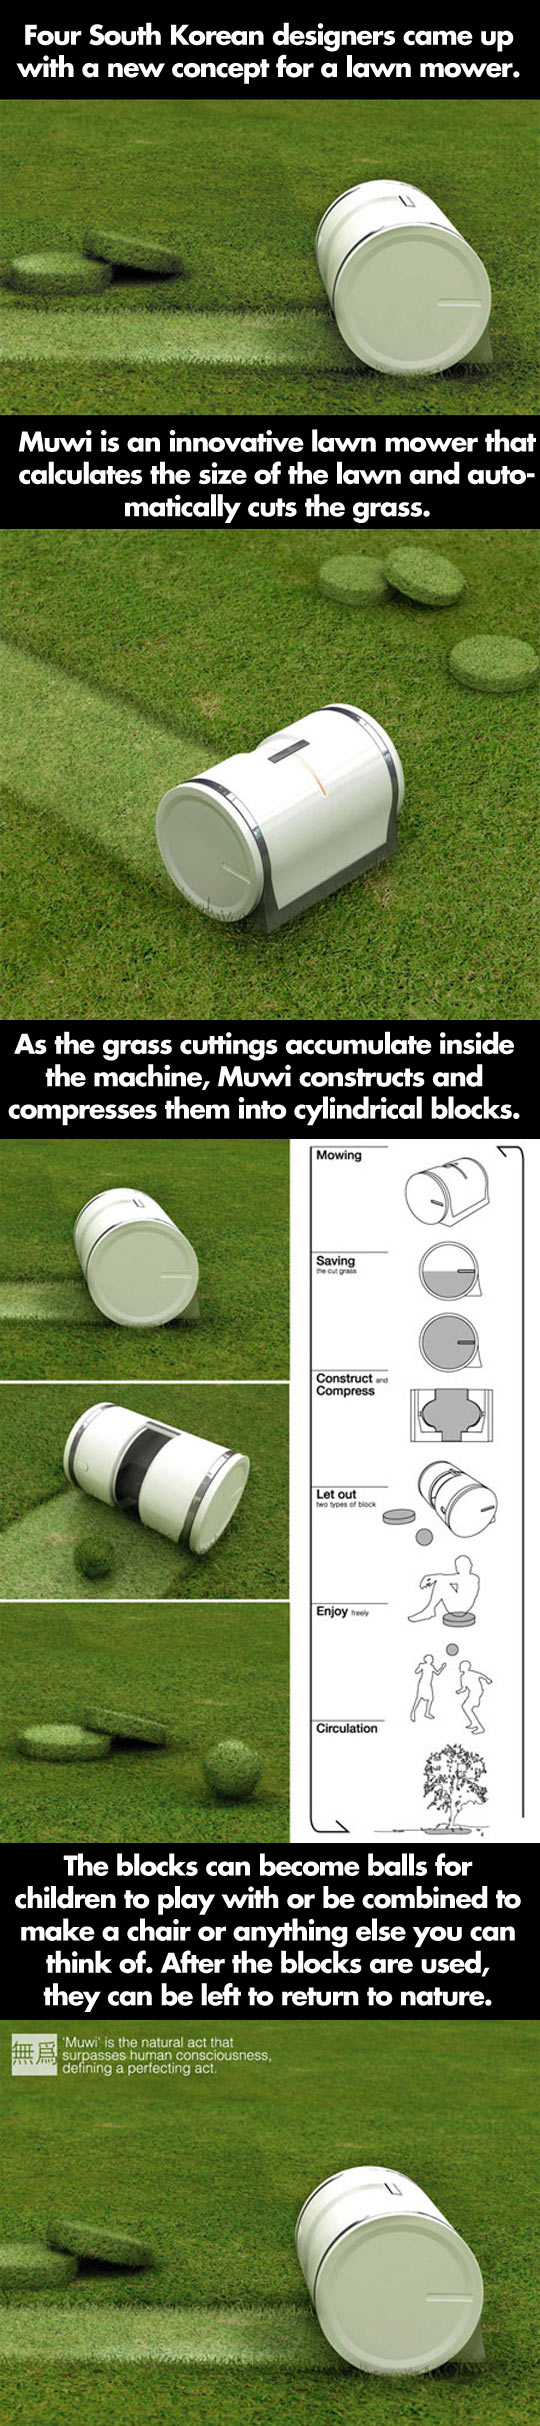 The Clever Muwi Lawn Mower